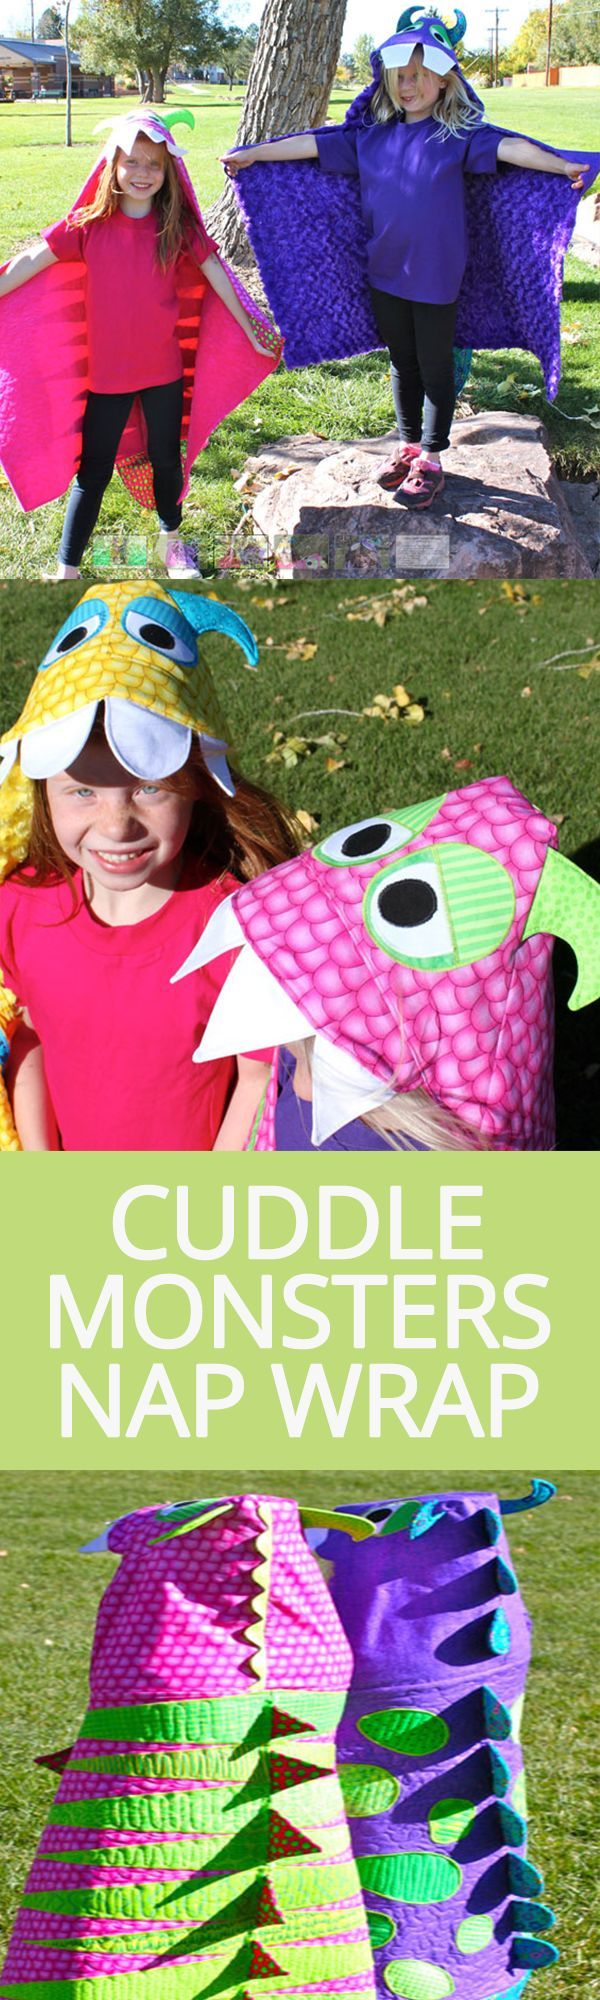 Cuddle Monsters Nap Wrap | National Sewing Circle http://www.nationalsewingcircle.com/product/cuddle-monsters-nap-wrap/?utm_content=buffere4436&utm_medium=social&utm_source=pinterest.com&utm_campaign=buffer #LetsSew